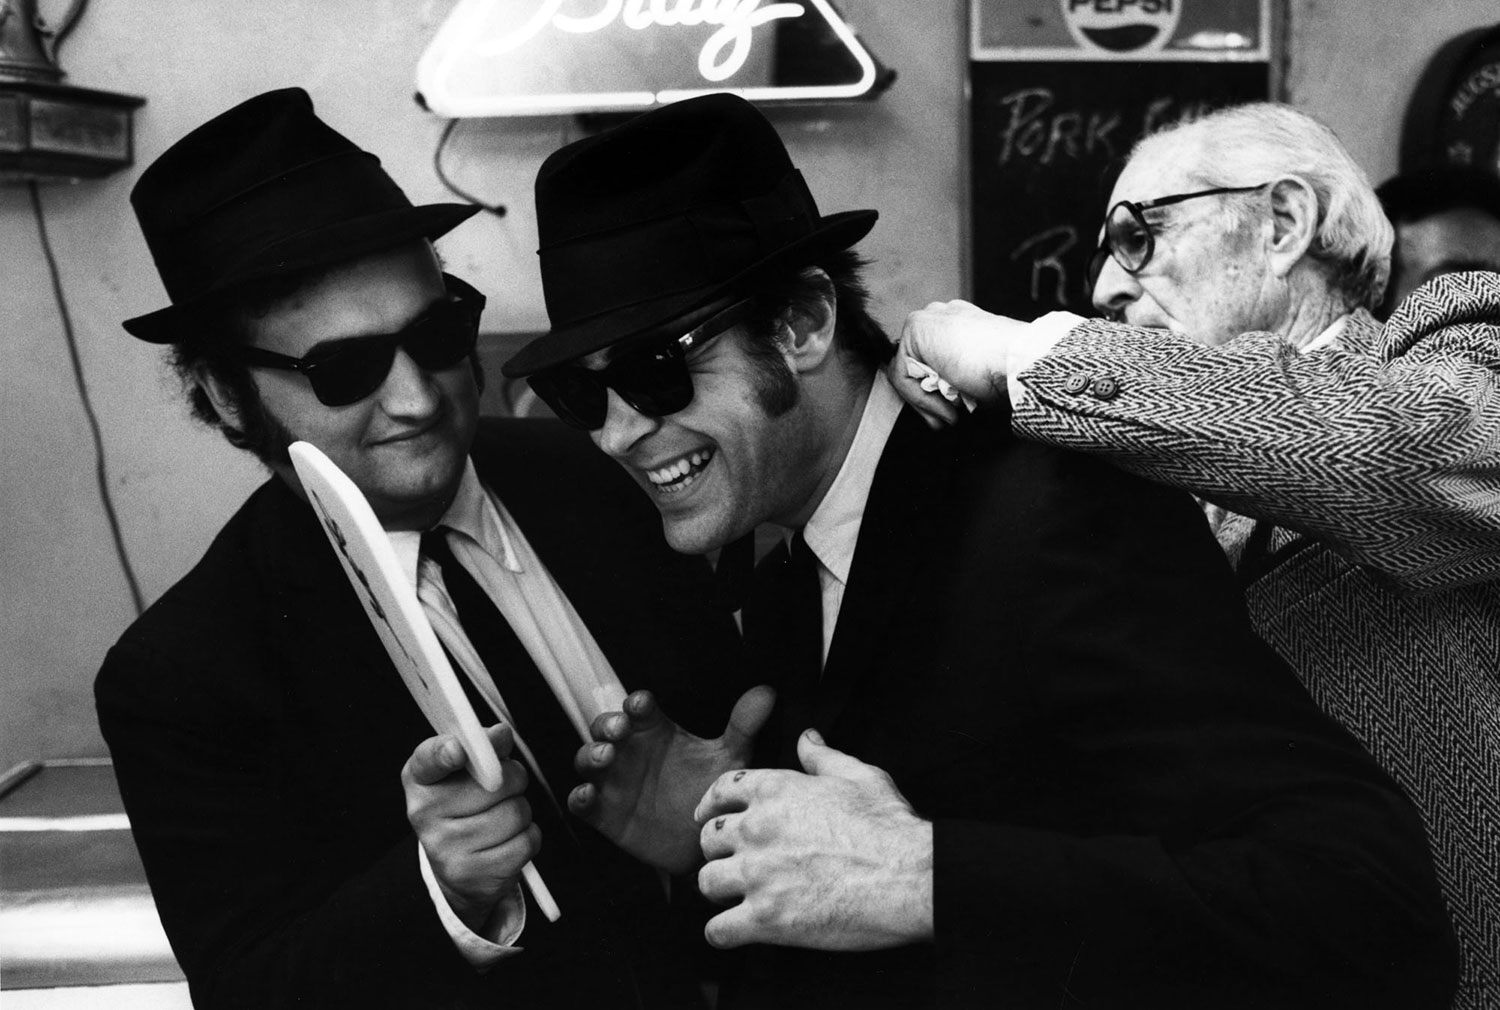 John Belushi and Dan Aykroyd have a laugh during the production of The Blues Brothers, which was shot with the full cooperation of Chicago mayor Jane M. Byrne.